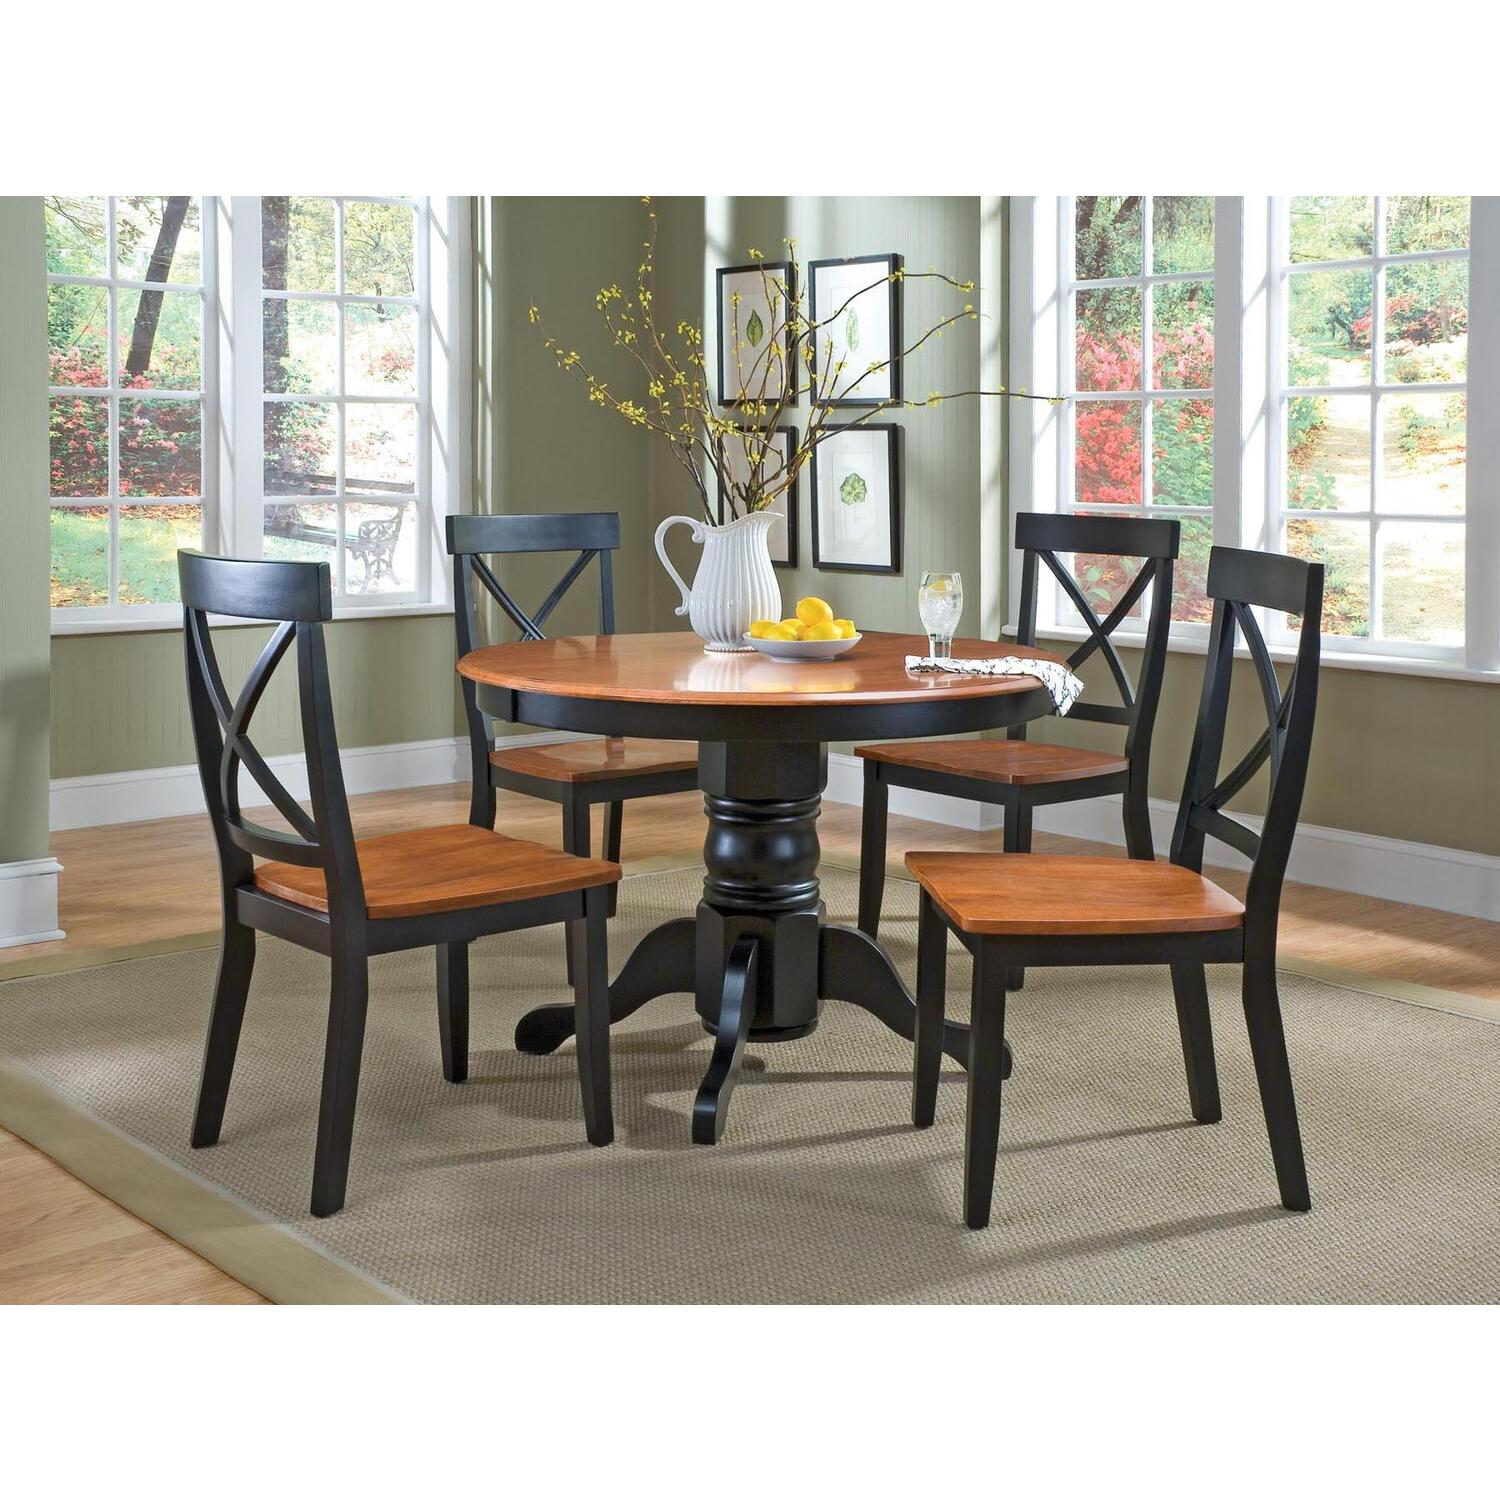 Furniture home goods appliances athletic gear fitness for Centerpieces for wood dining table